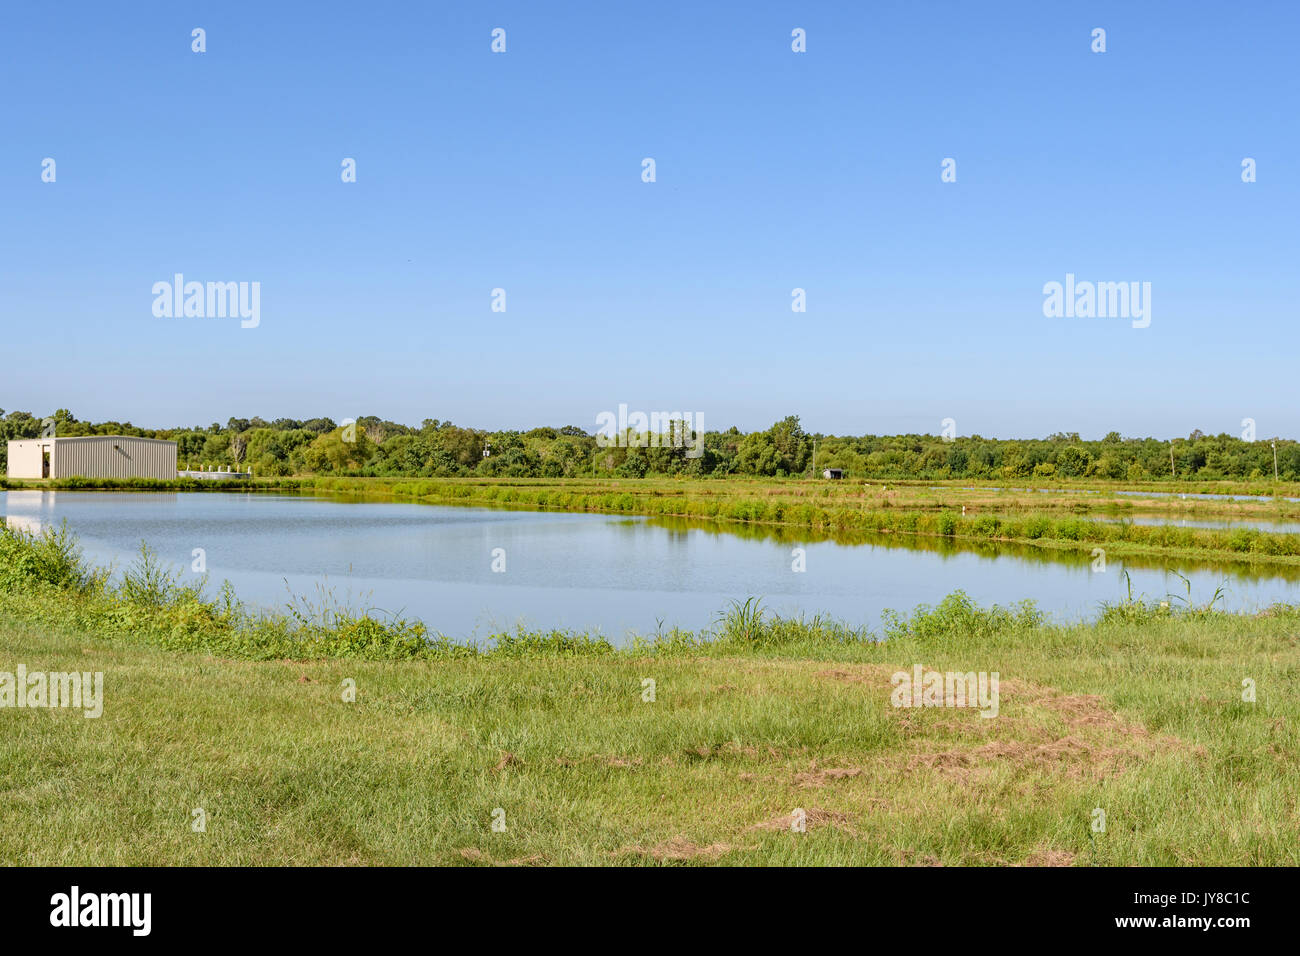 Game fish stock photos game fish stock images alamy for Alabama fish hatcheries